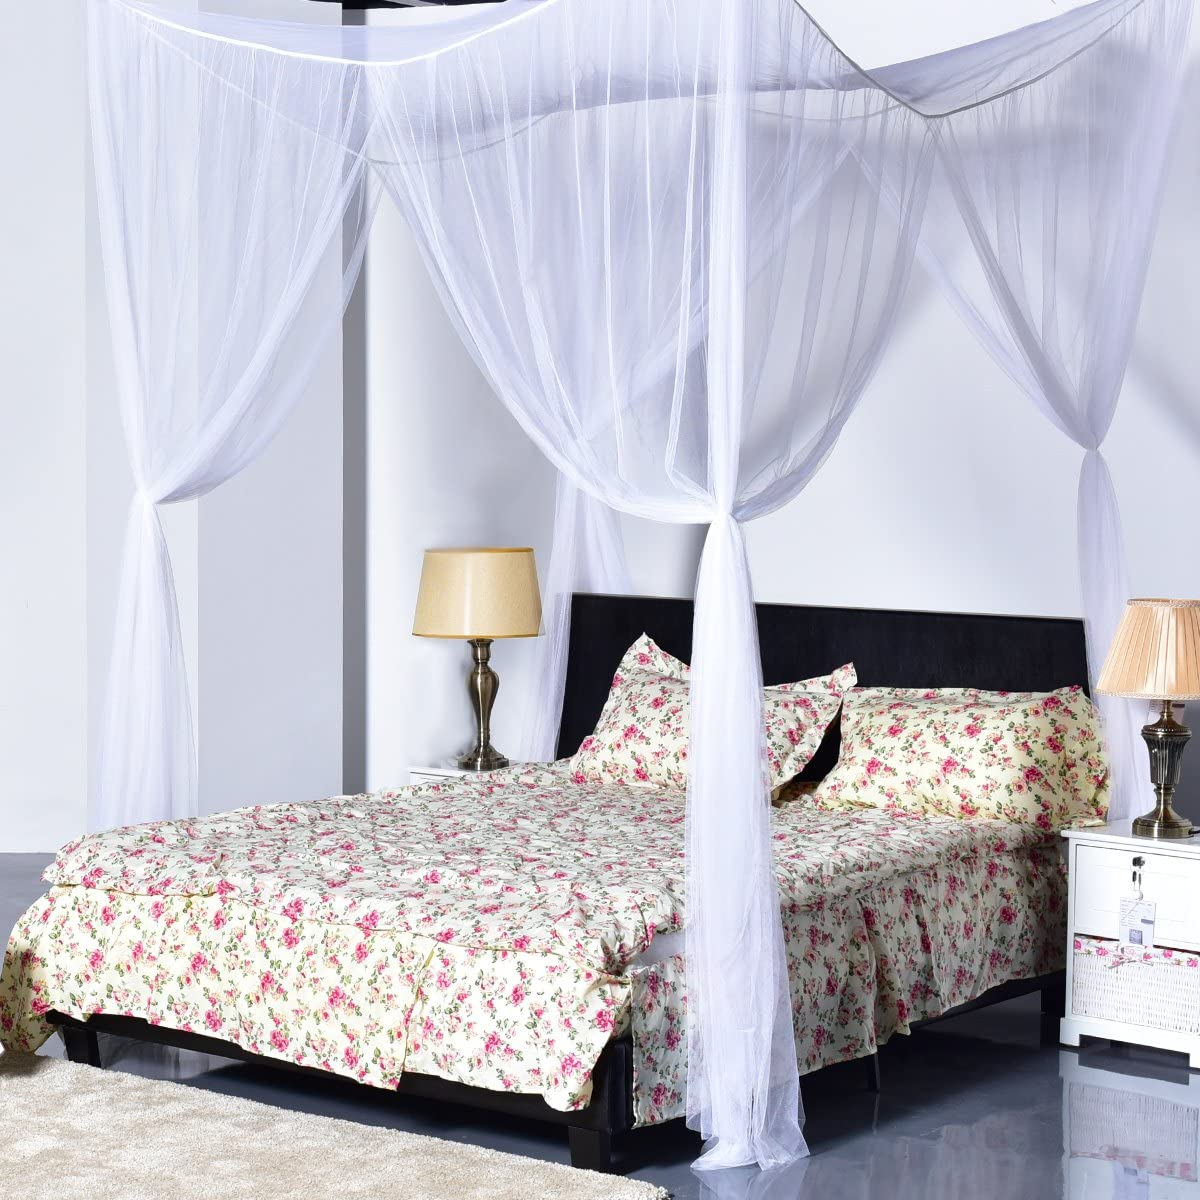 Goplus Mosquito Net, 4 Corner Post Bed Canopy